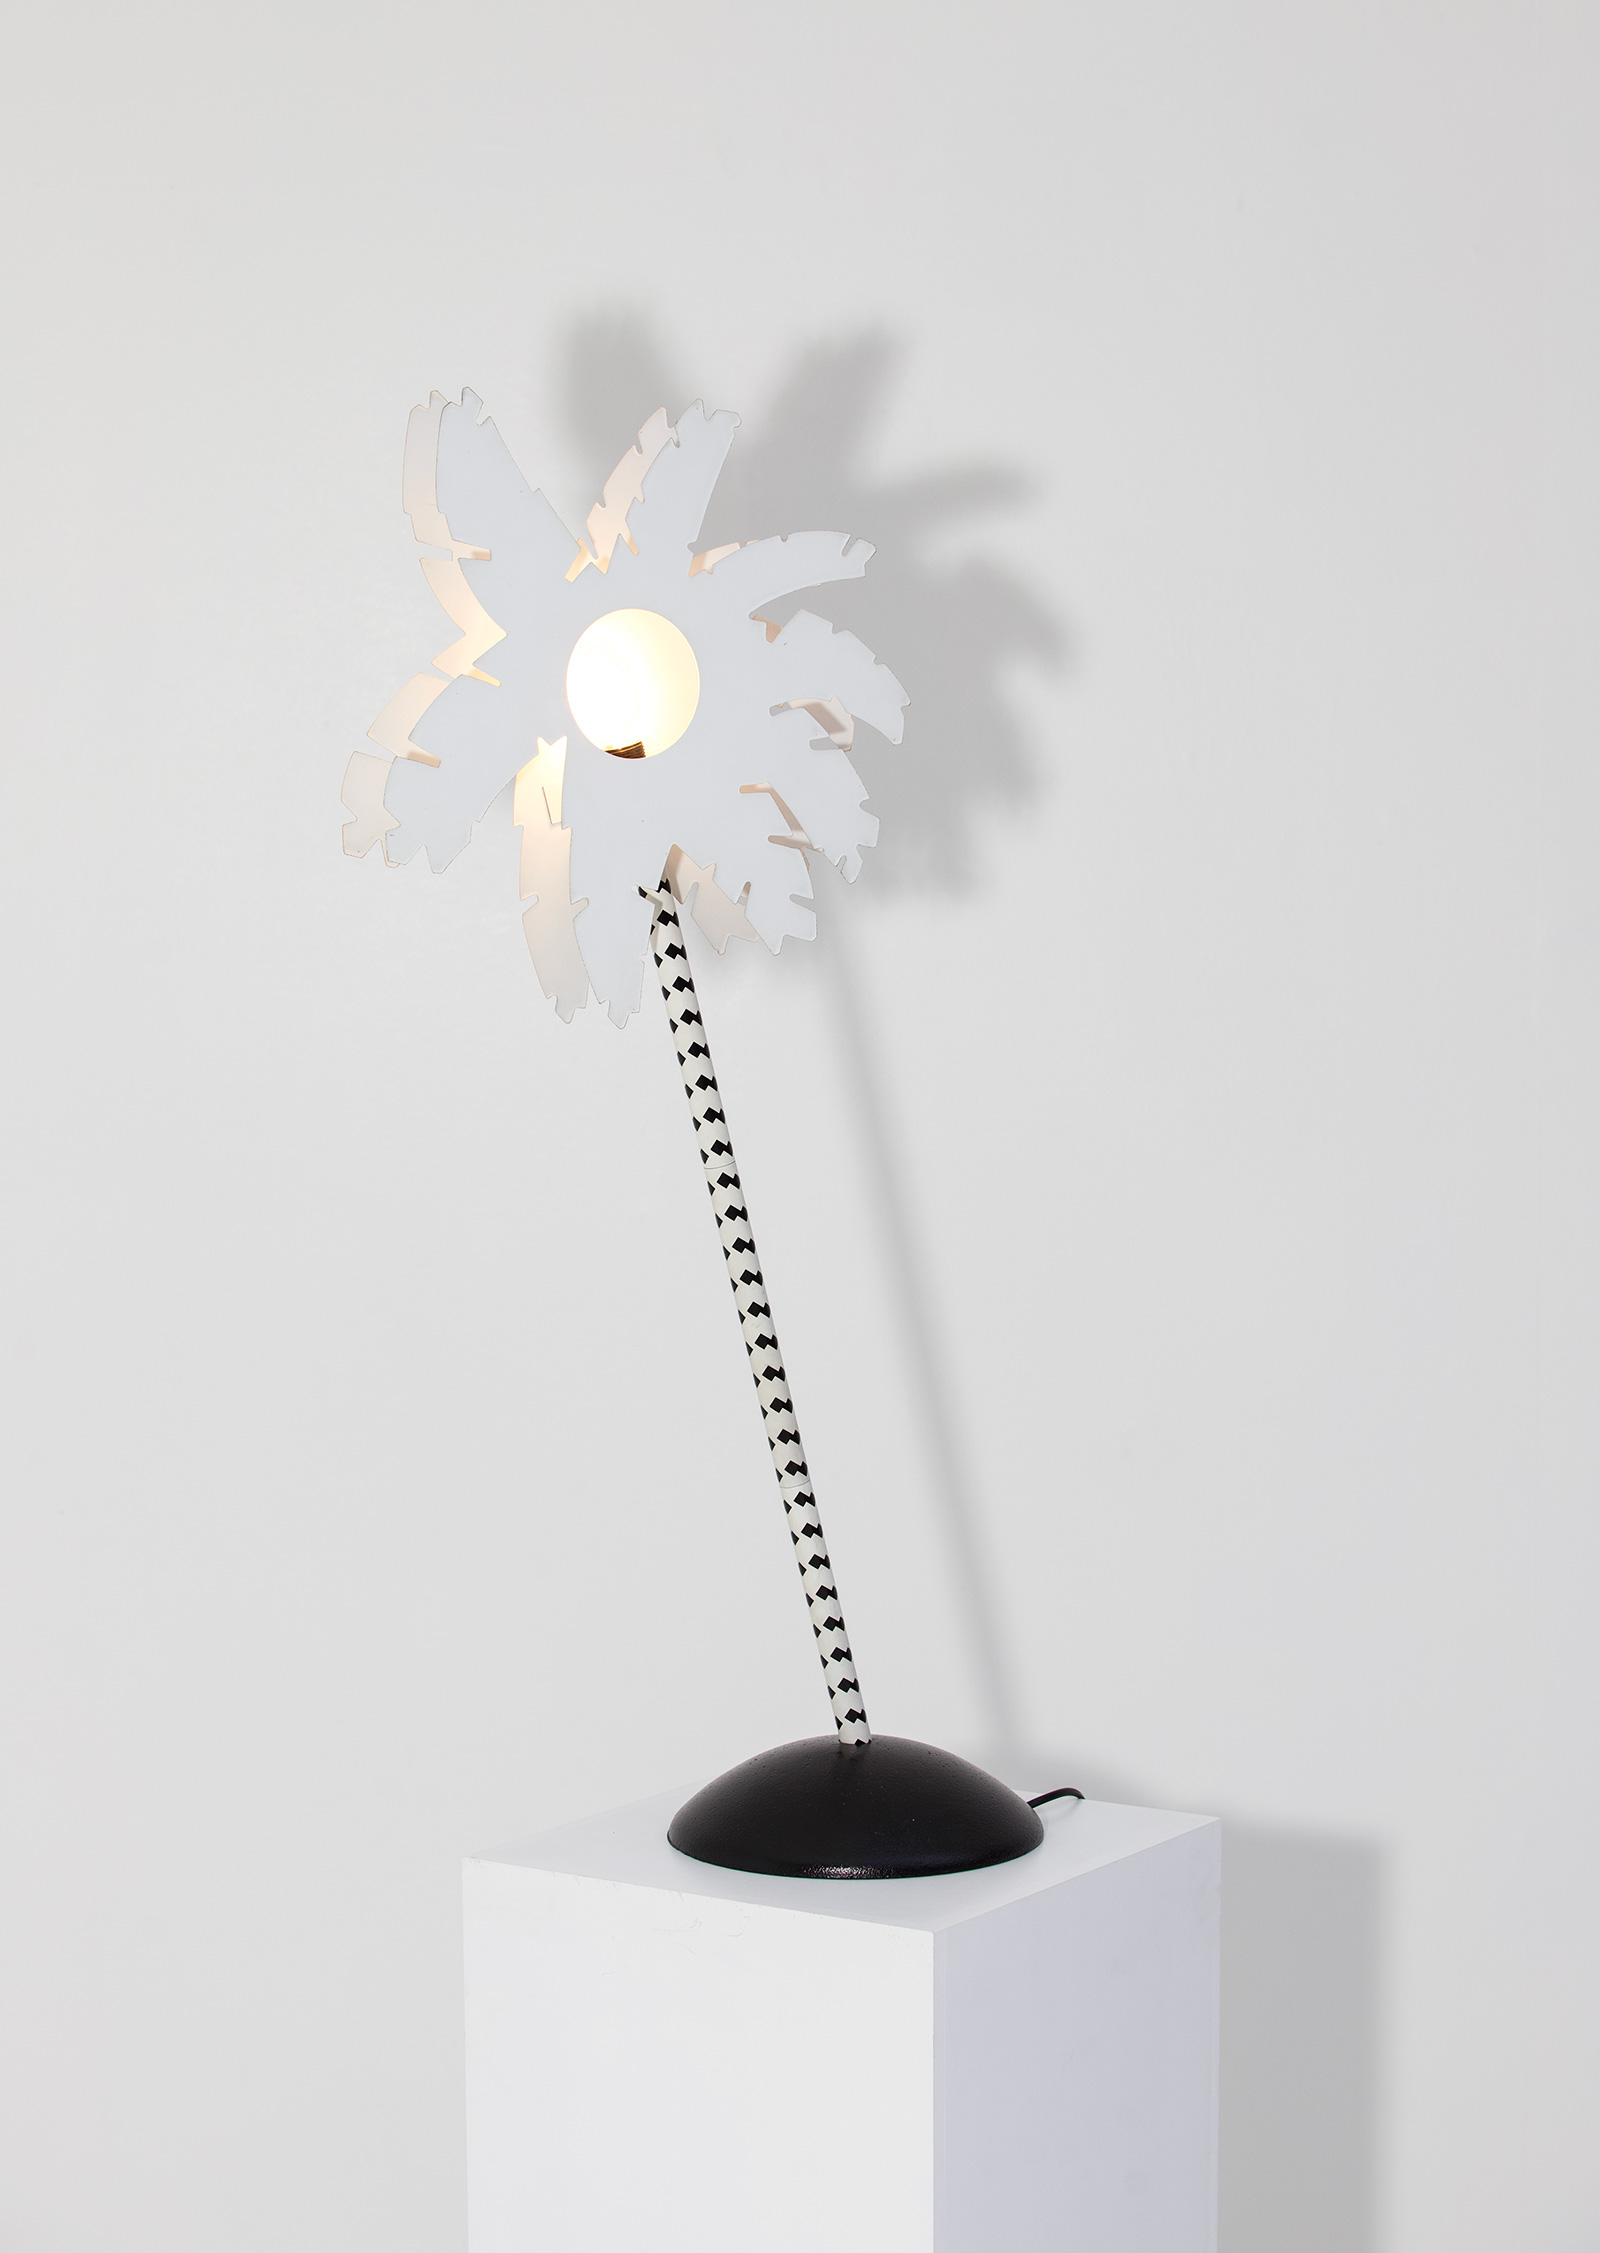 Fiorucci Palm Tree Table Lampimage 7